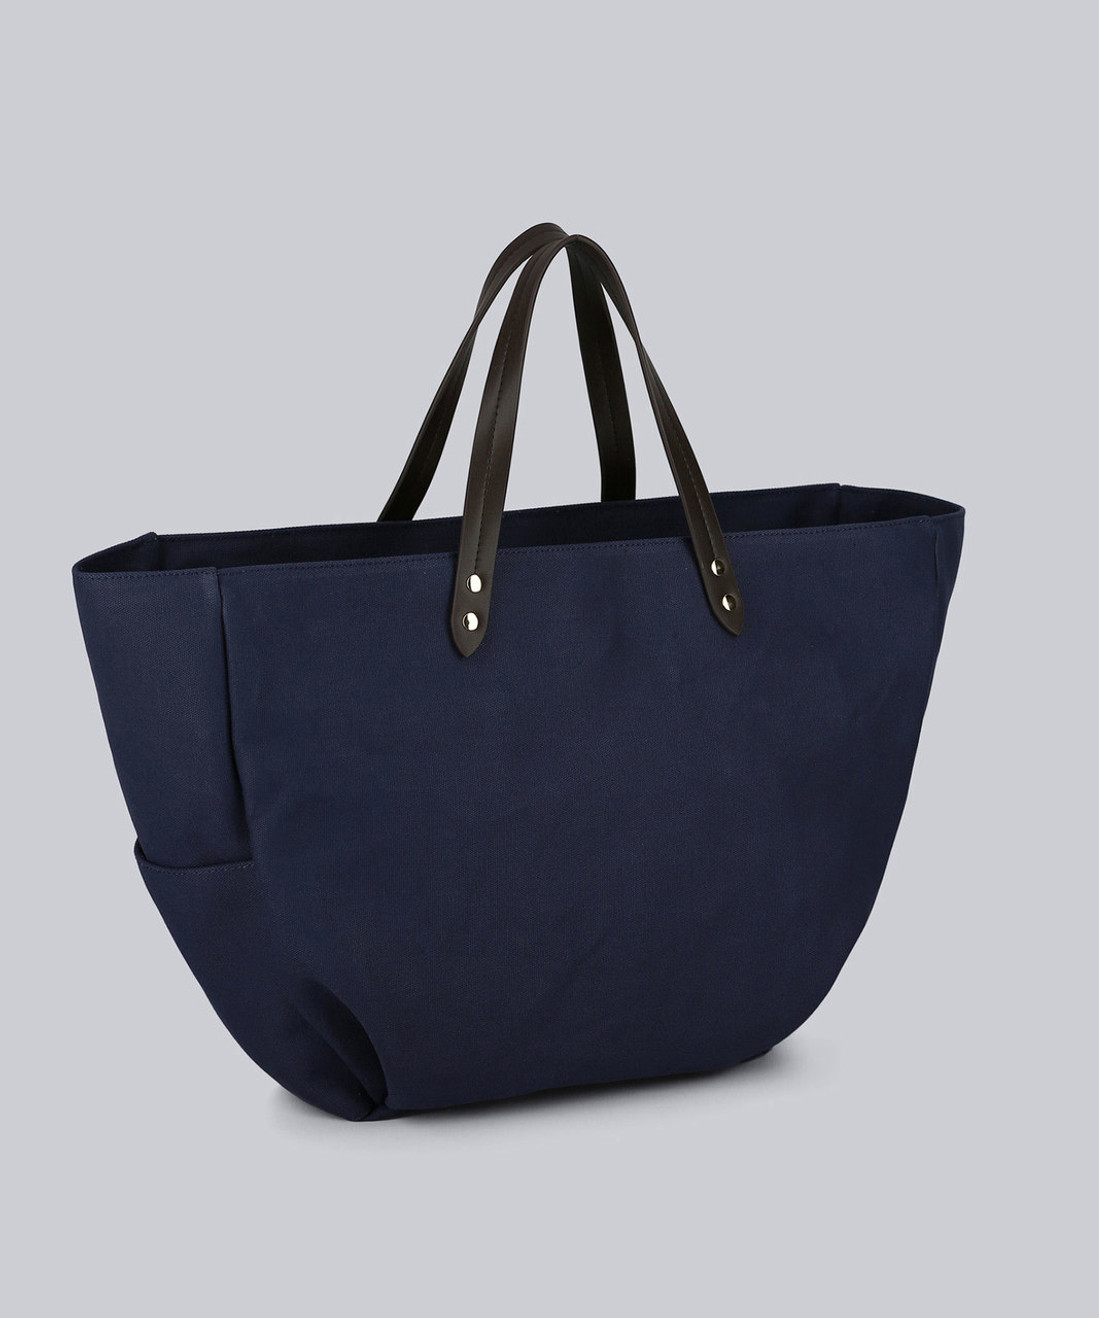 Women's Iris Tote Bag - John Rich & Bros.